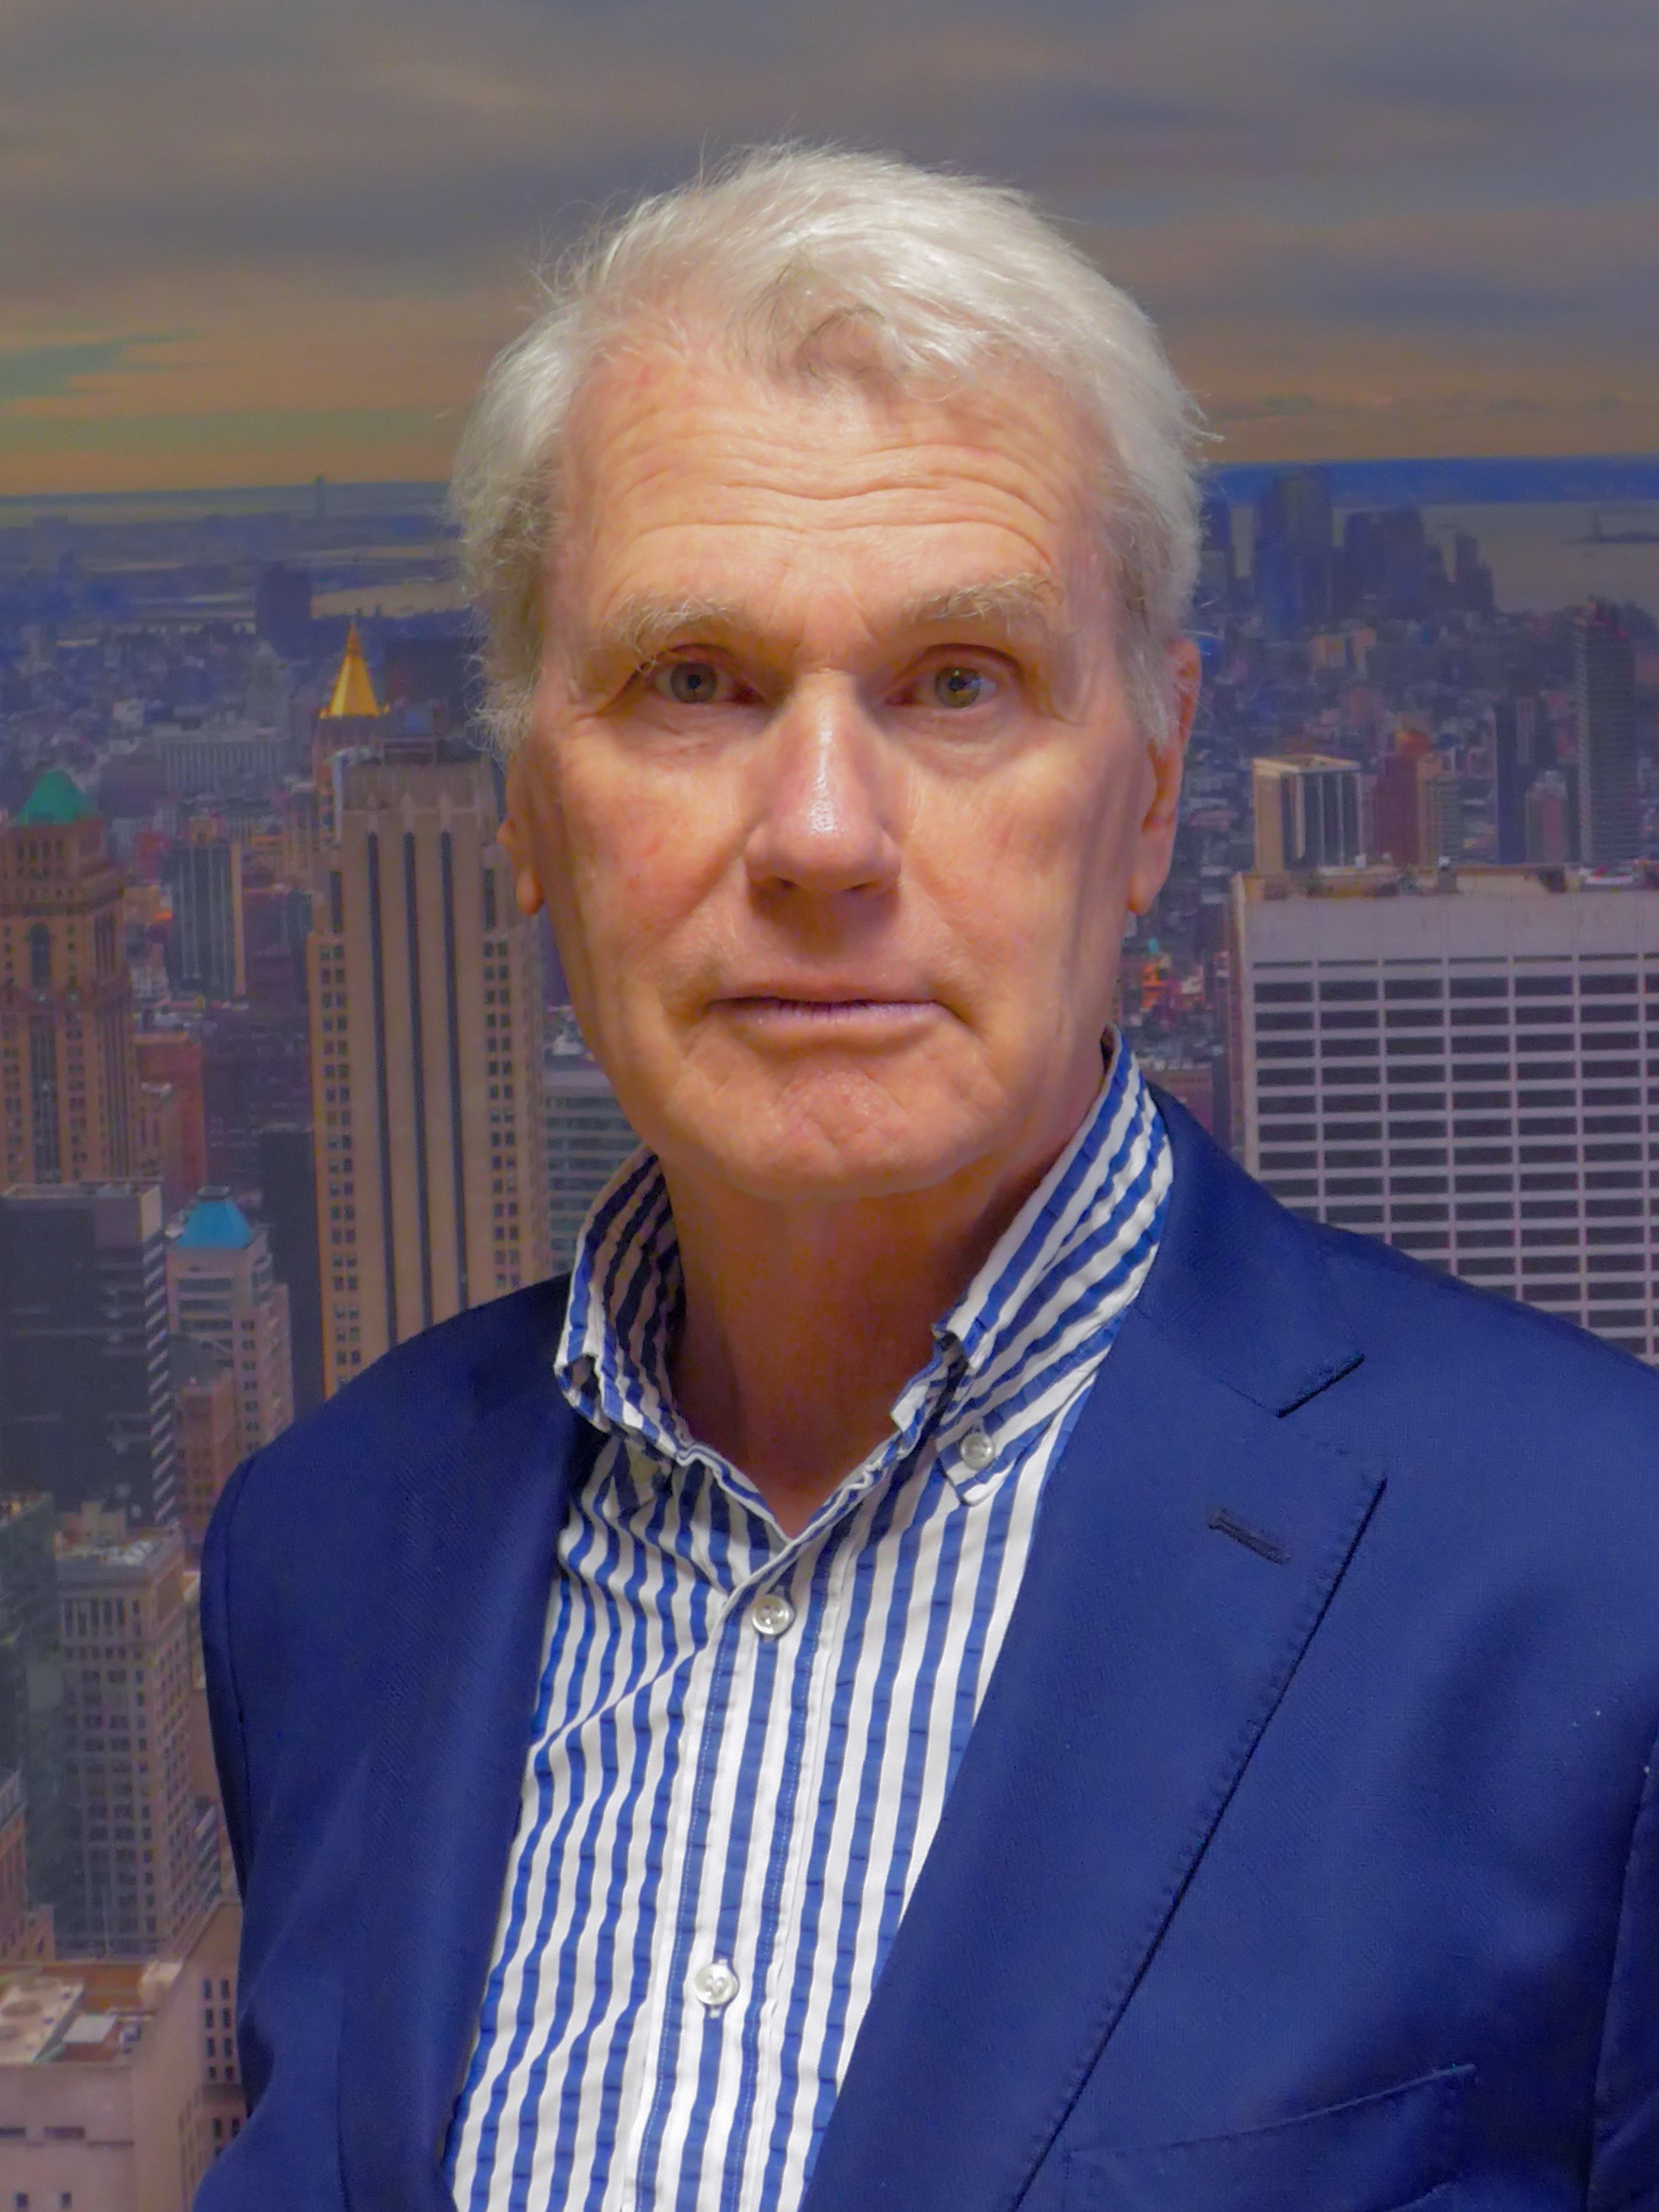 The 71-year old son of father Victor Justin Mulder and mother Maria van Dis Adriaan van Dis in 2018 photo. Adriaan van Dis earned a  million dollar salary - leaving the net worth at 2.3 million in 2018